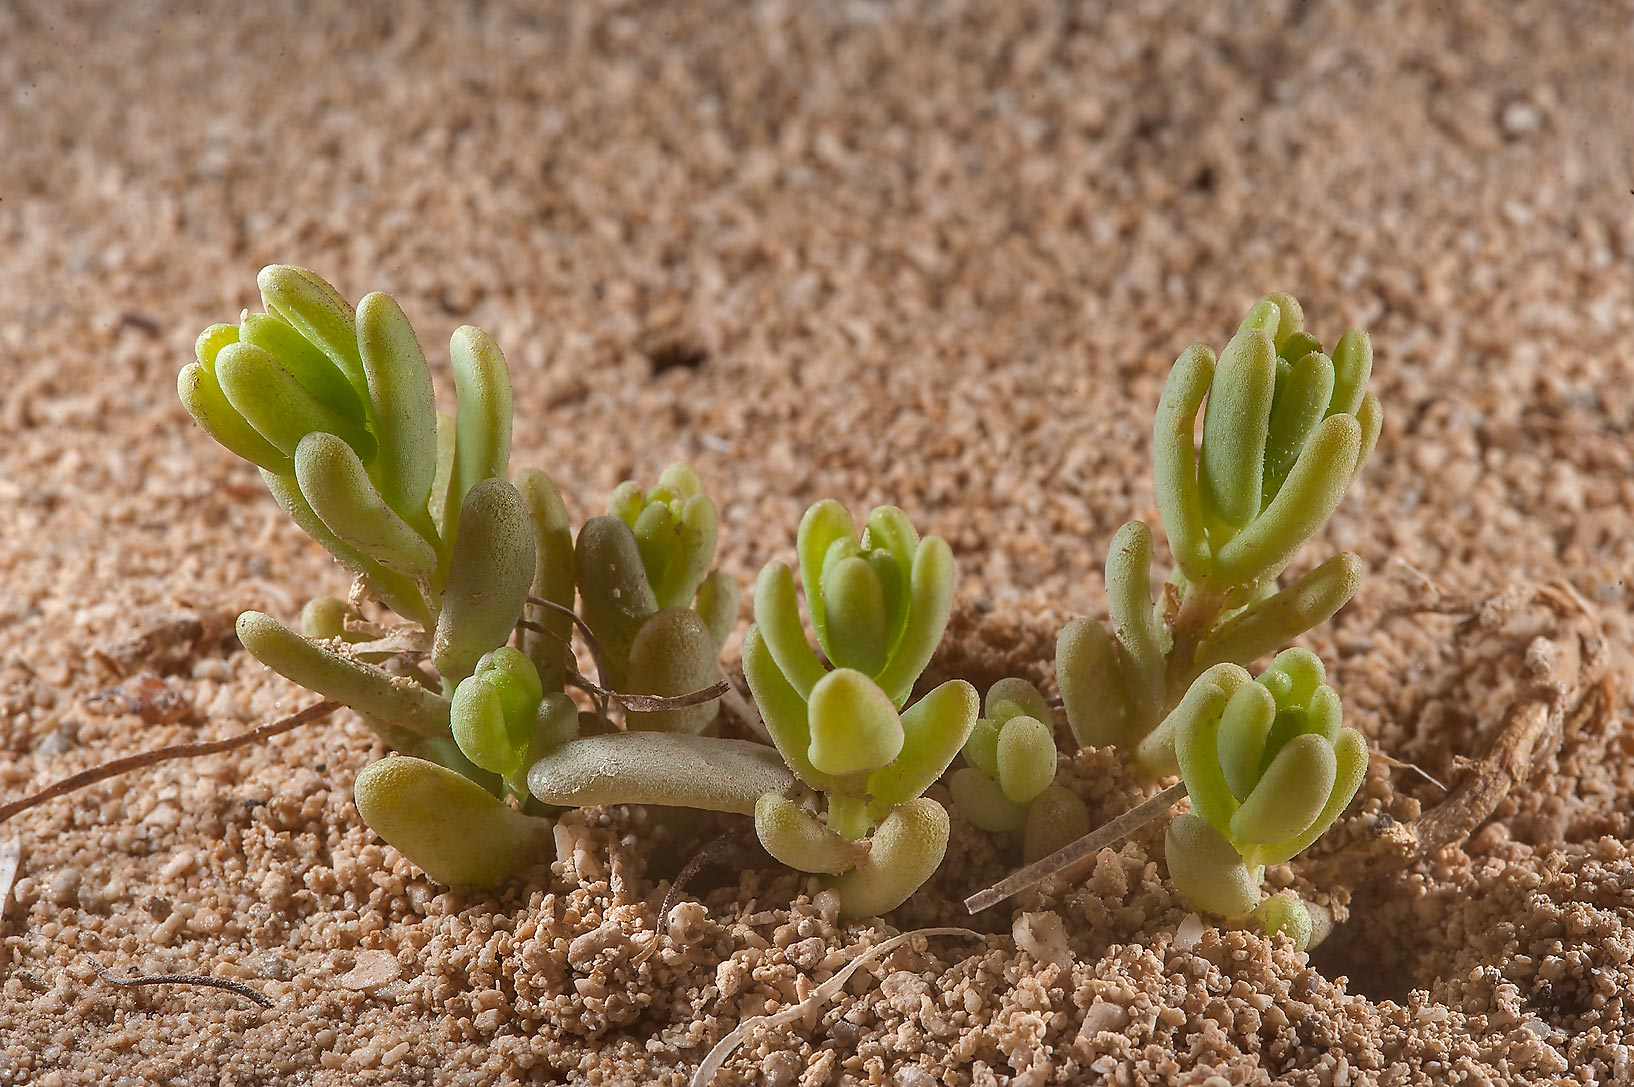 Bienertia sinuspersici emerging from sand on a...Madinat Al Shamal area. Northern Qatar